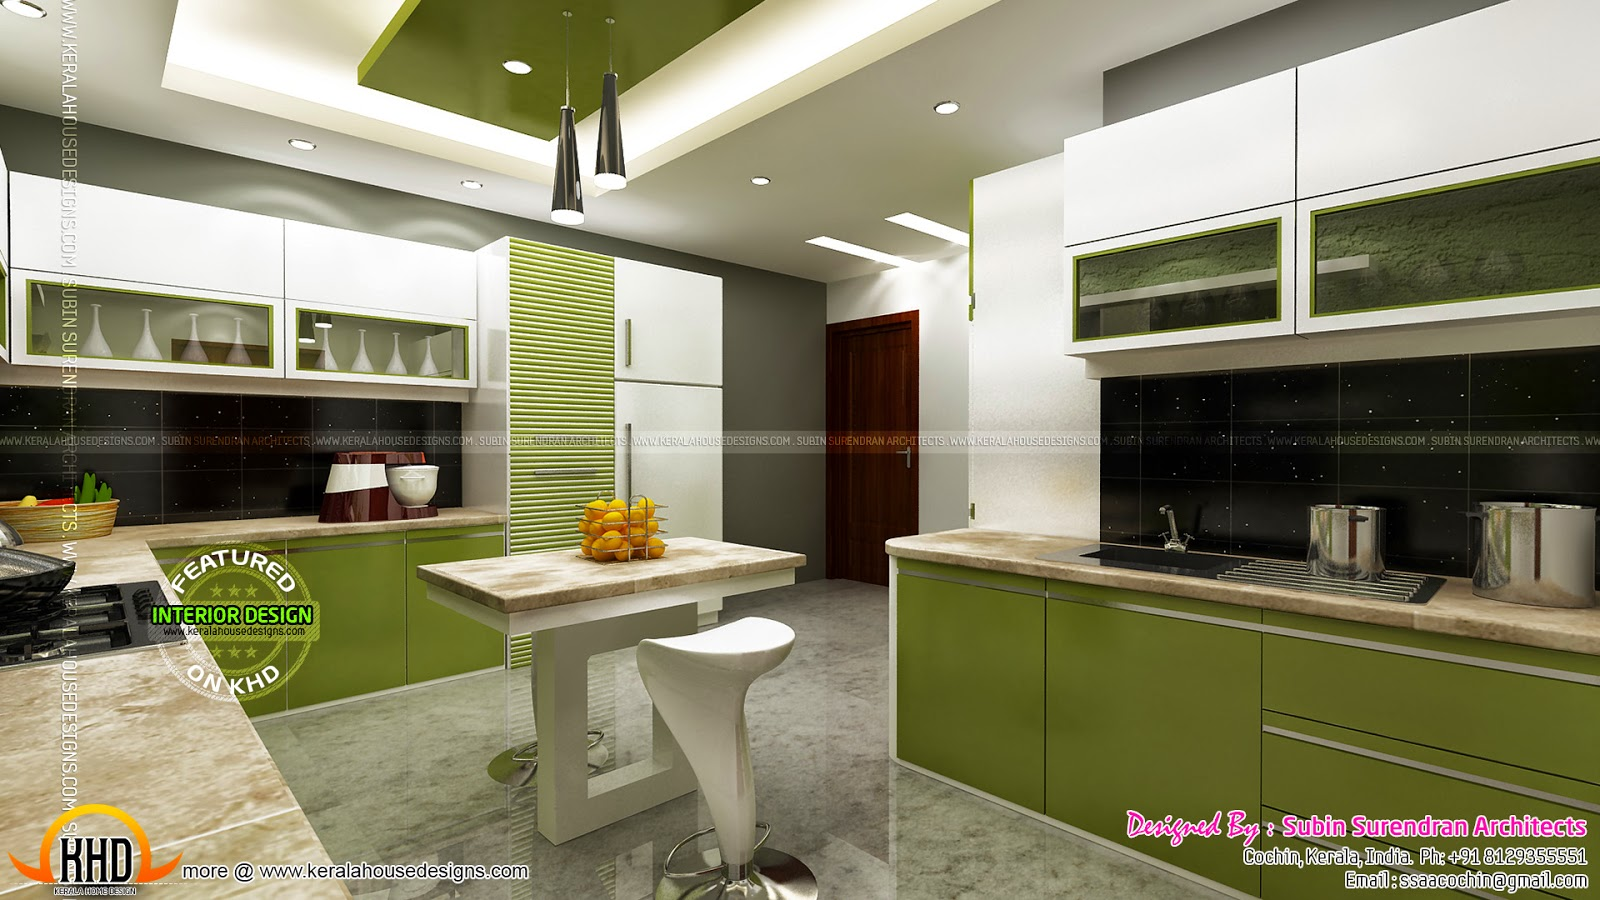 luxury interior designs in kerala kerala home design and